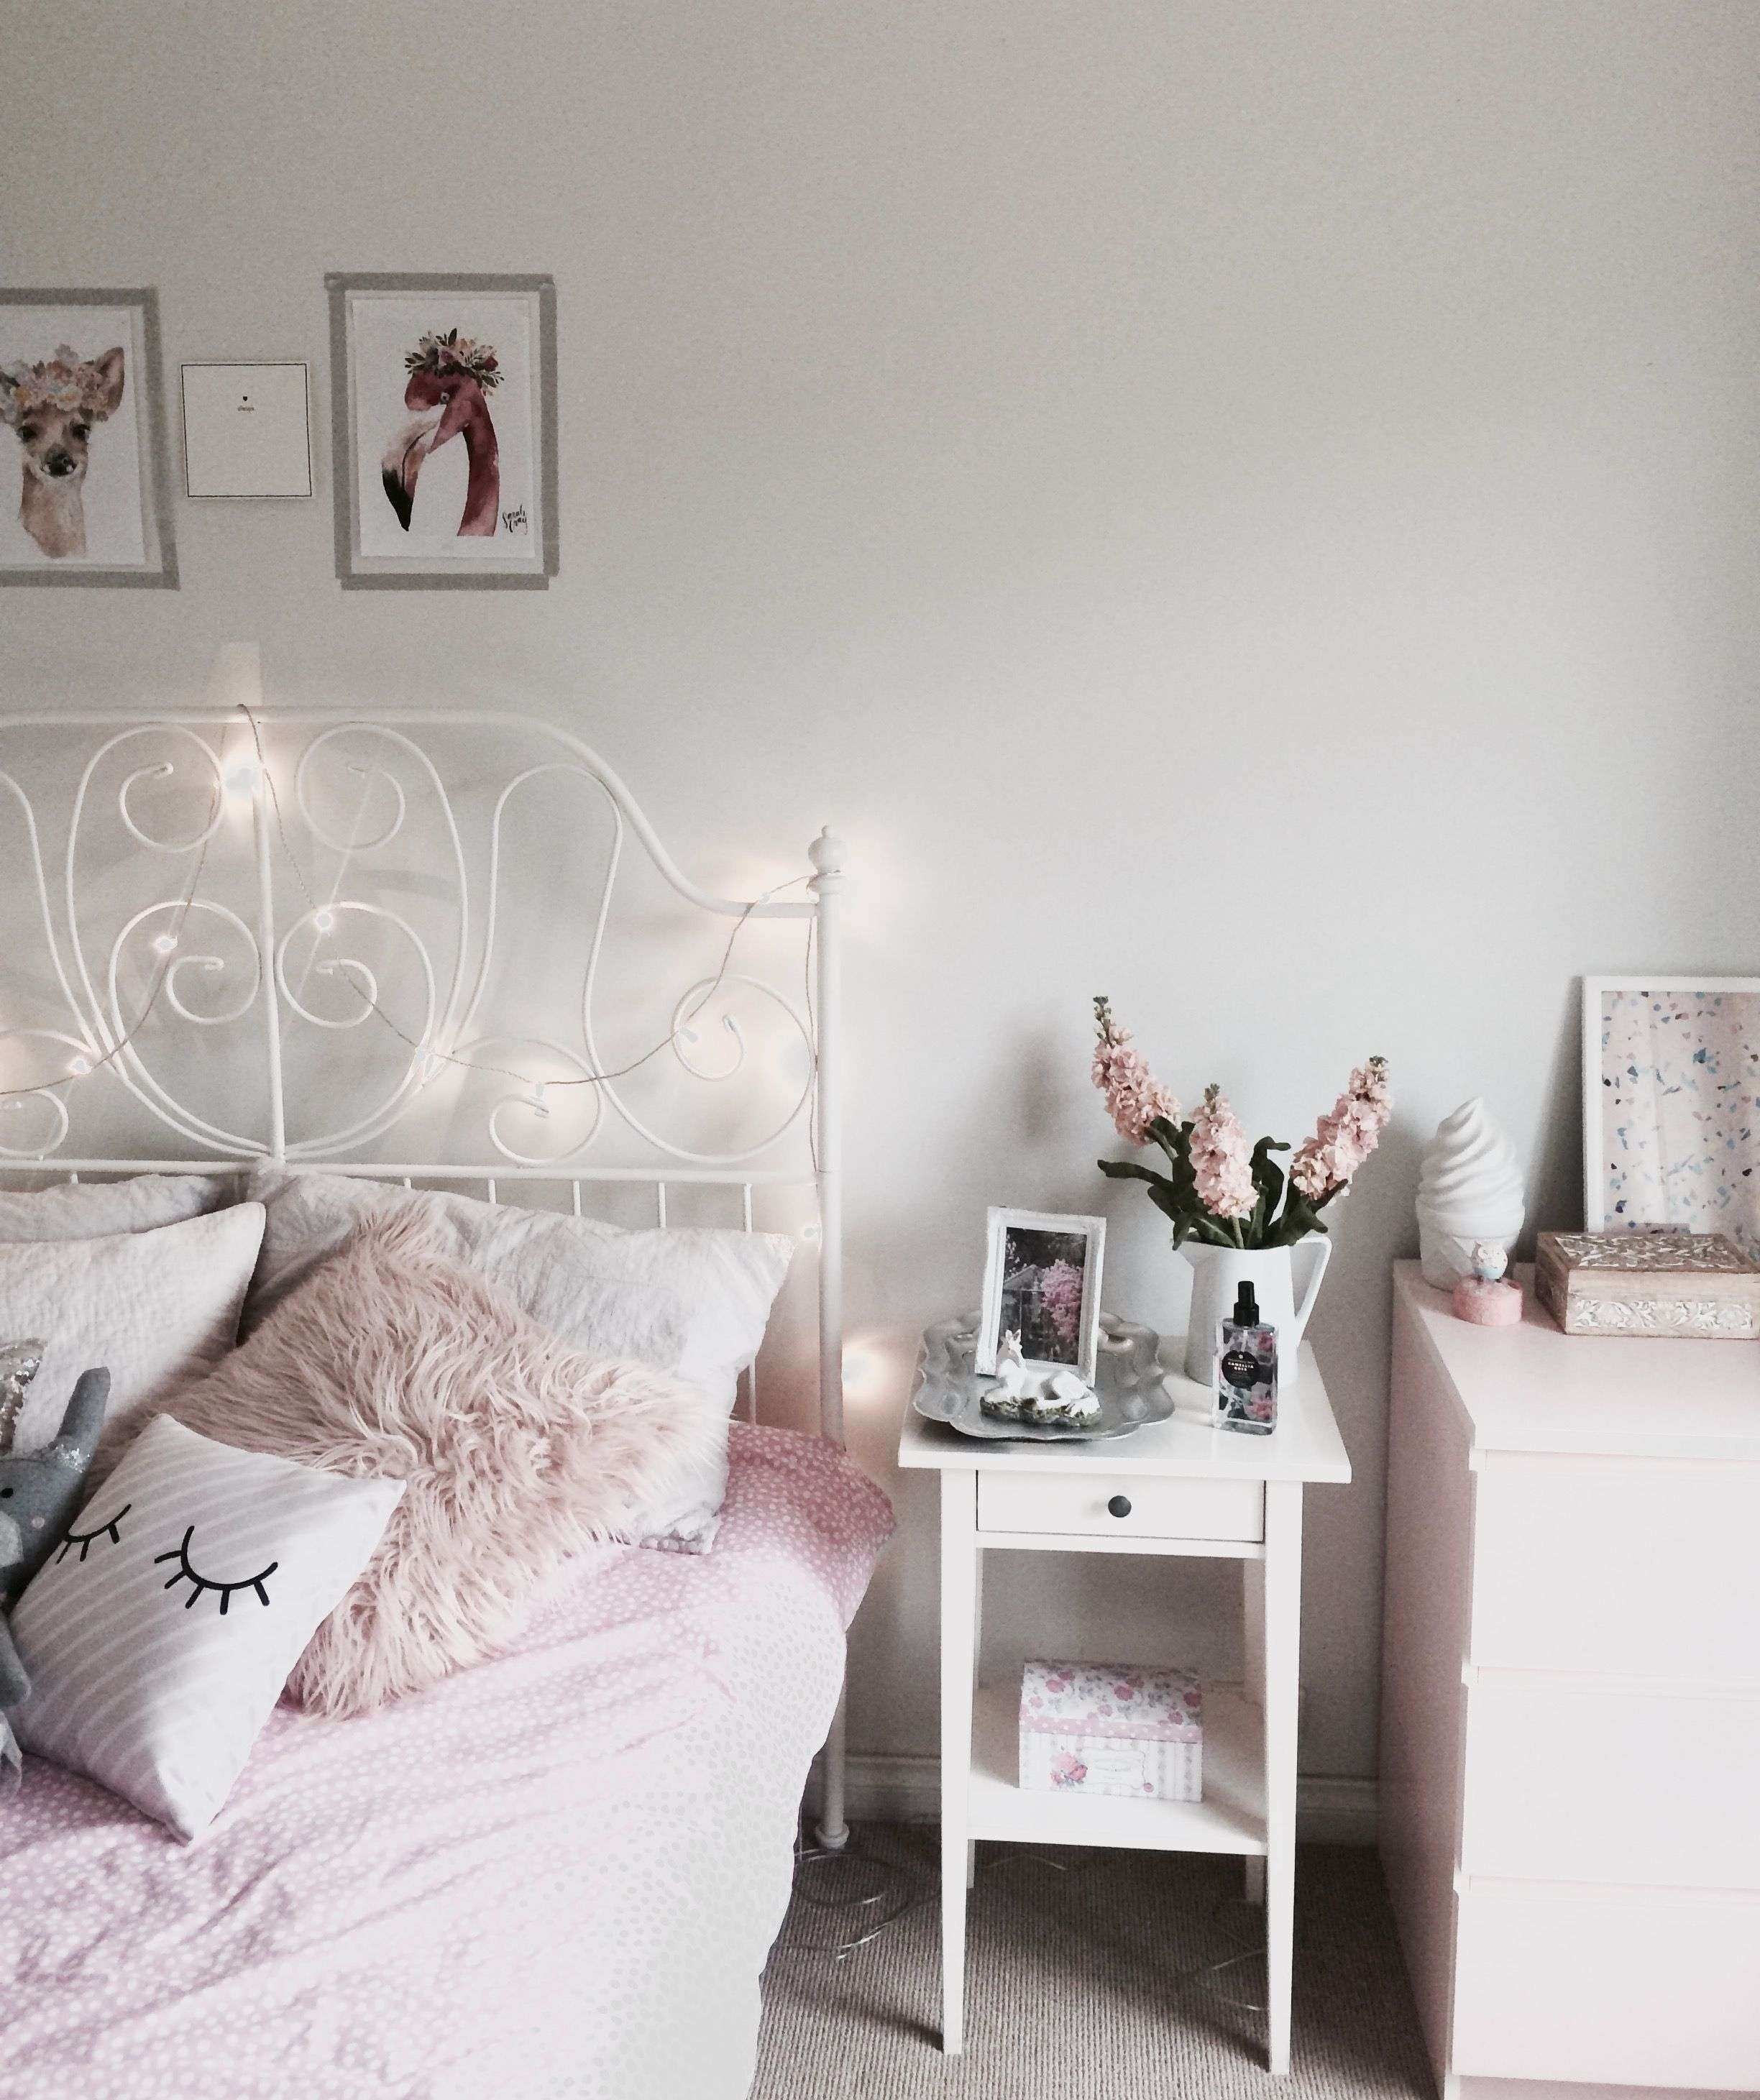 40 Best Ideas for Girls Rooms Image